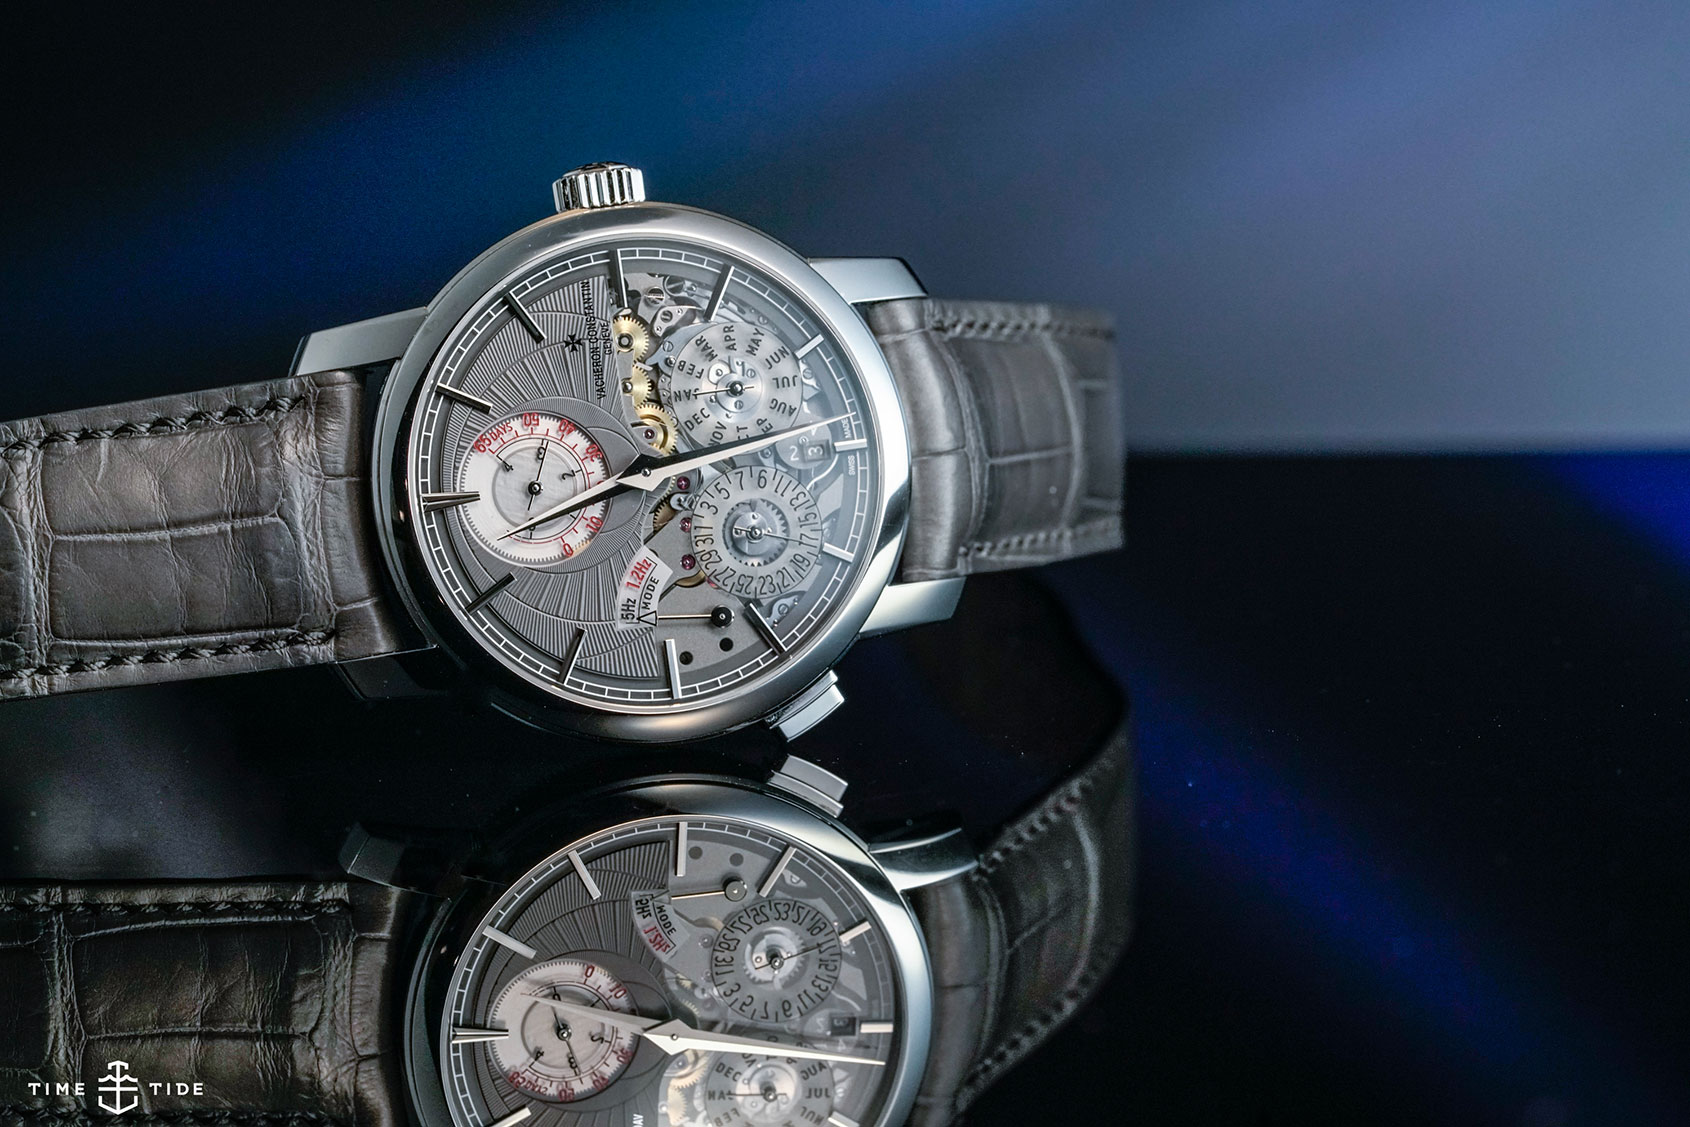 QP Perfection: 5 of the most exciting perpetual calendar watches of the last year